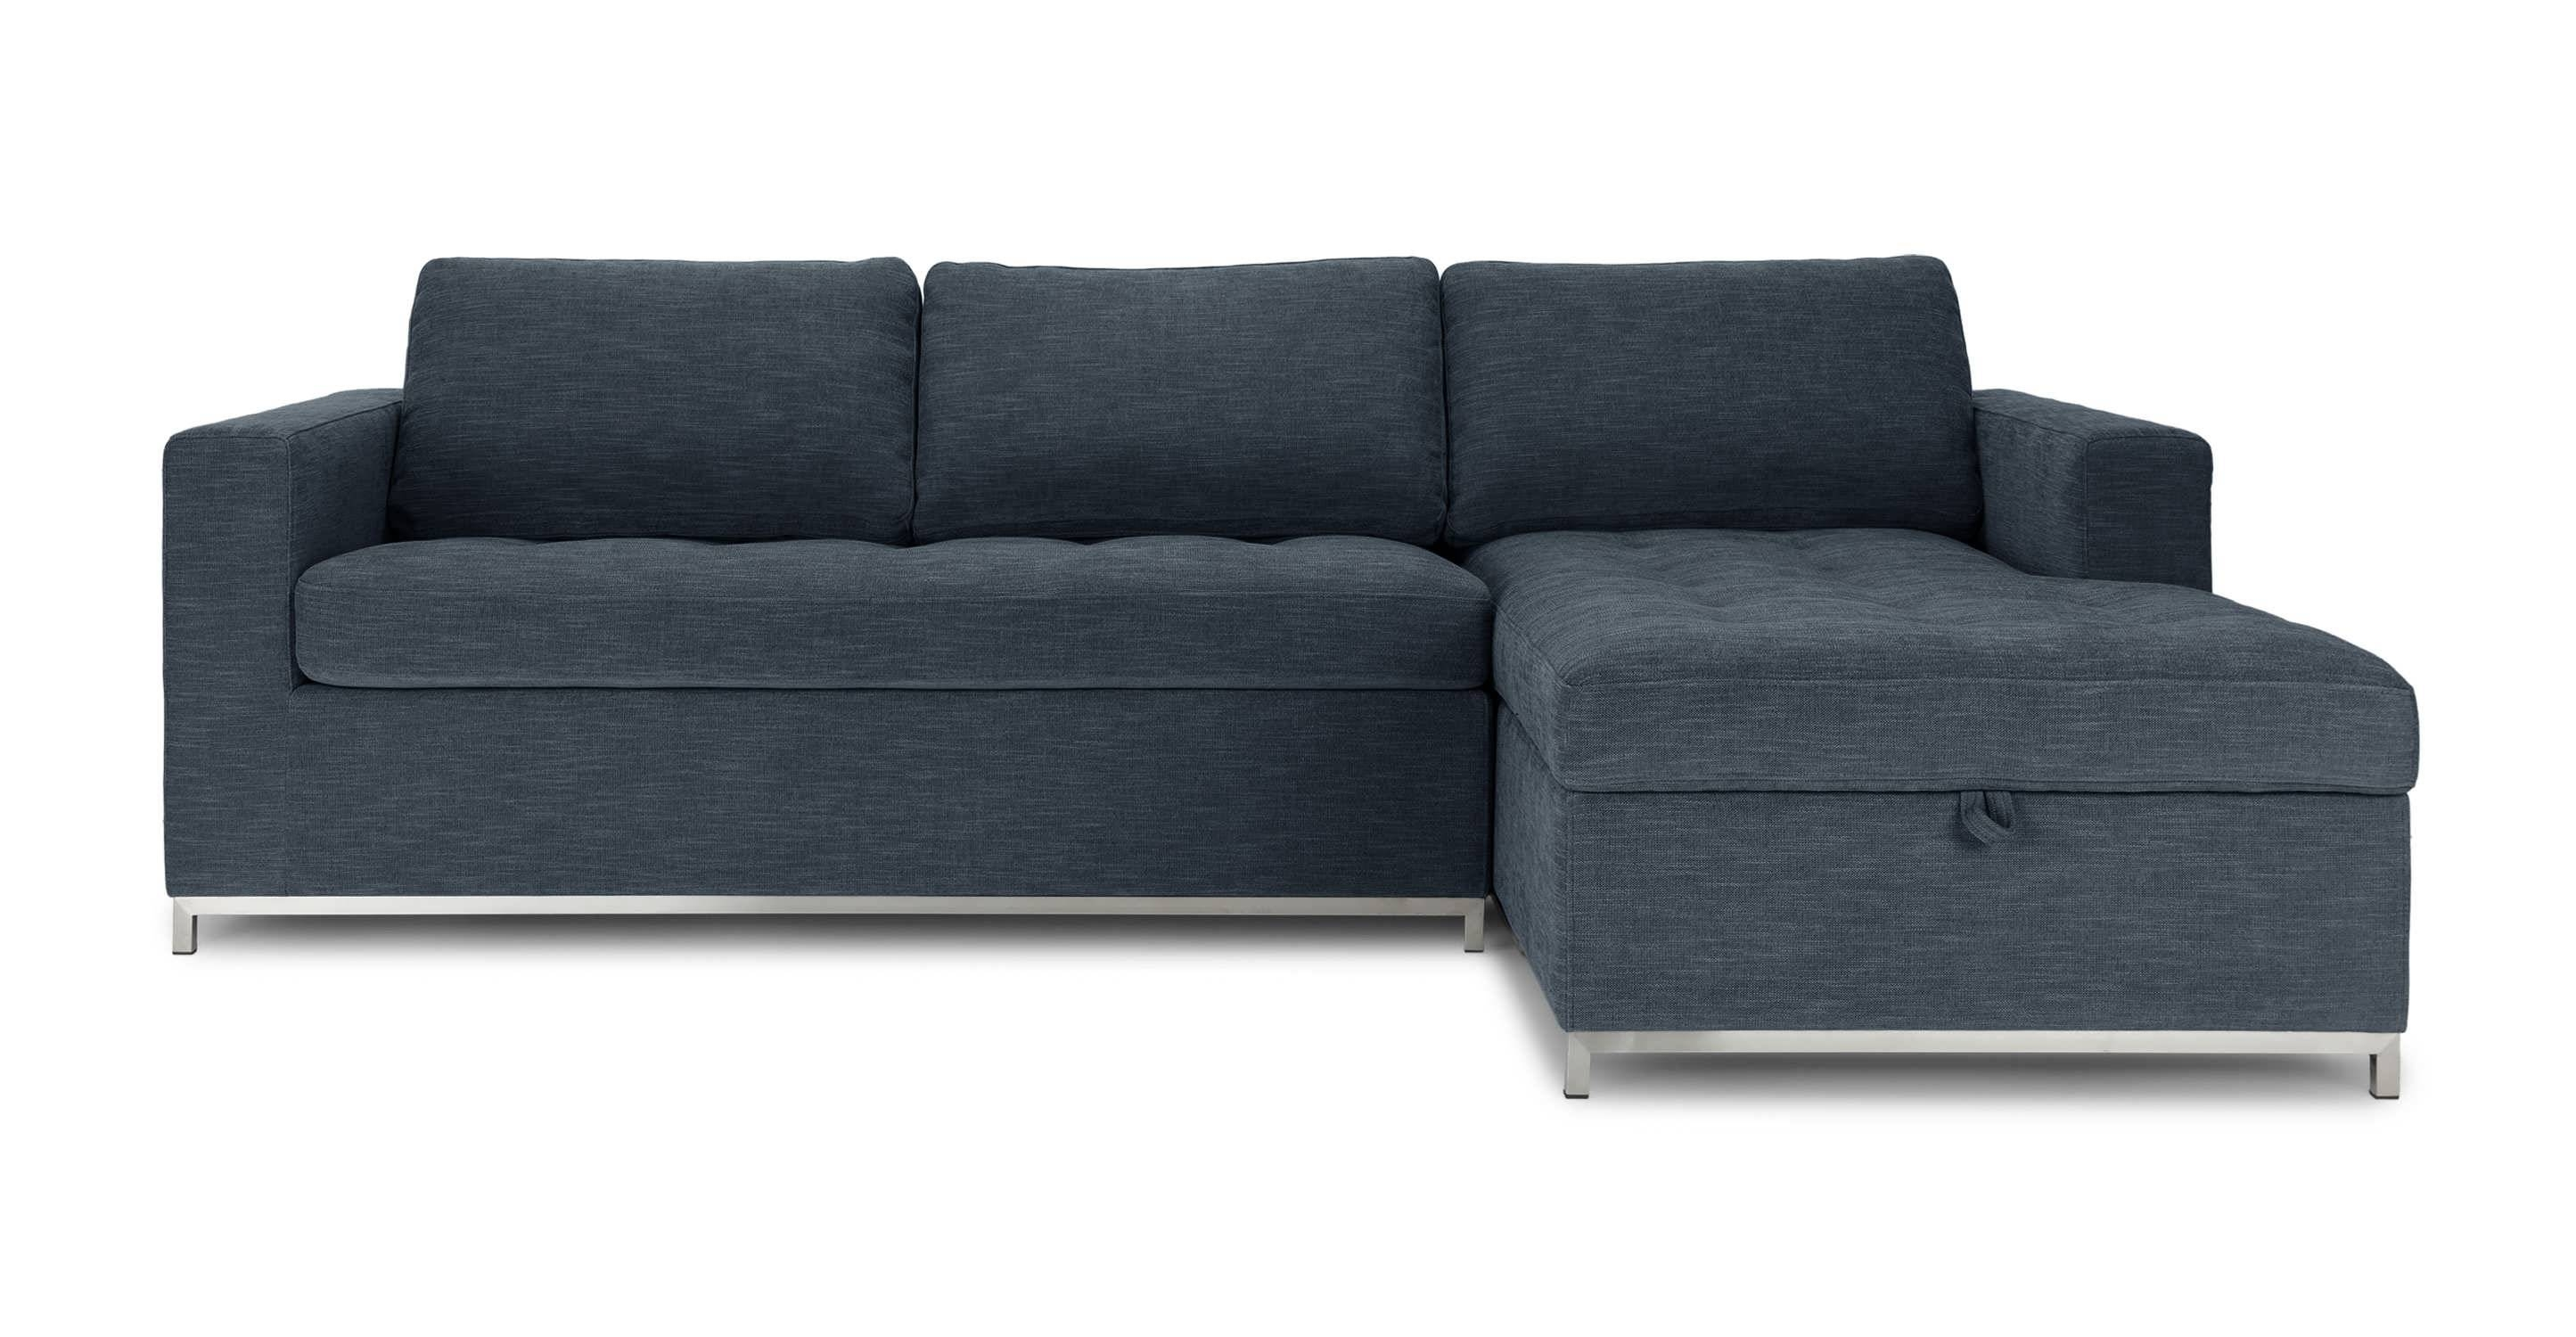 craigslist sofa bed singapore ashley nolana charcoal small l shaped katoartduo thesofa